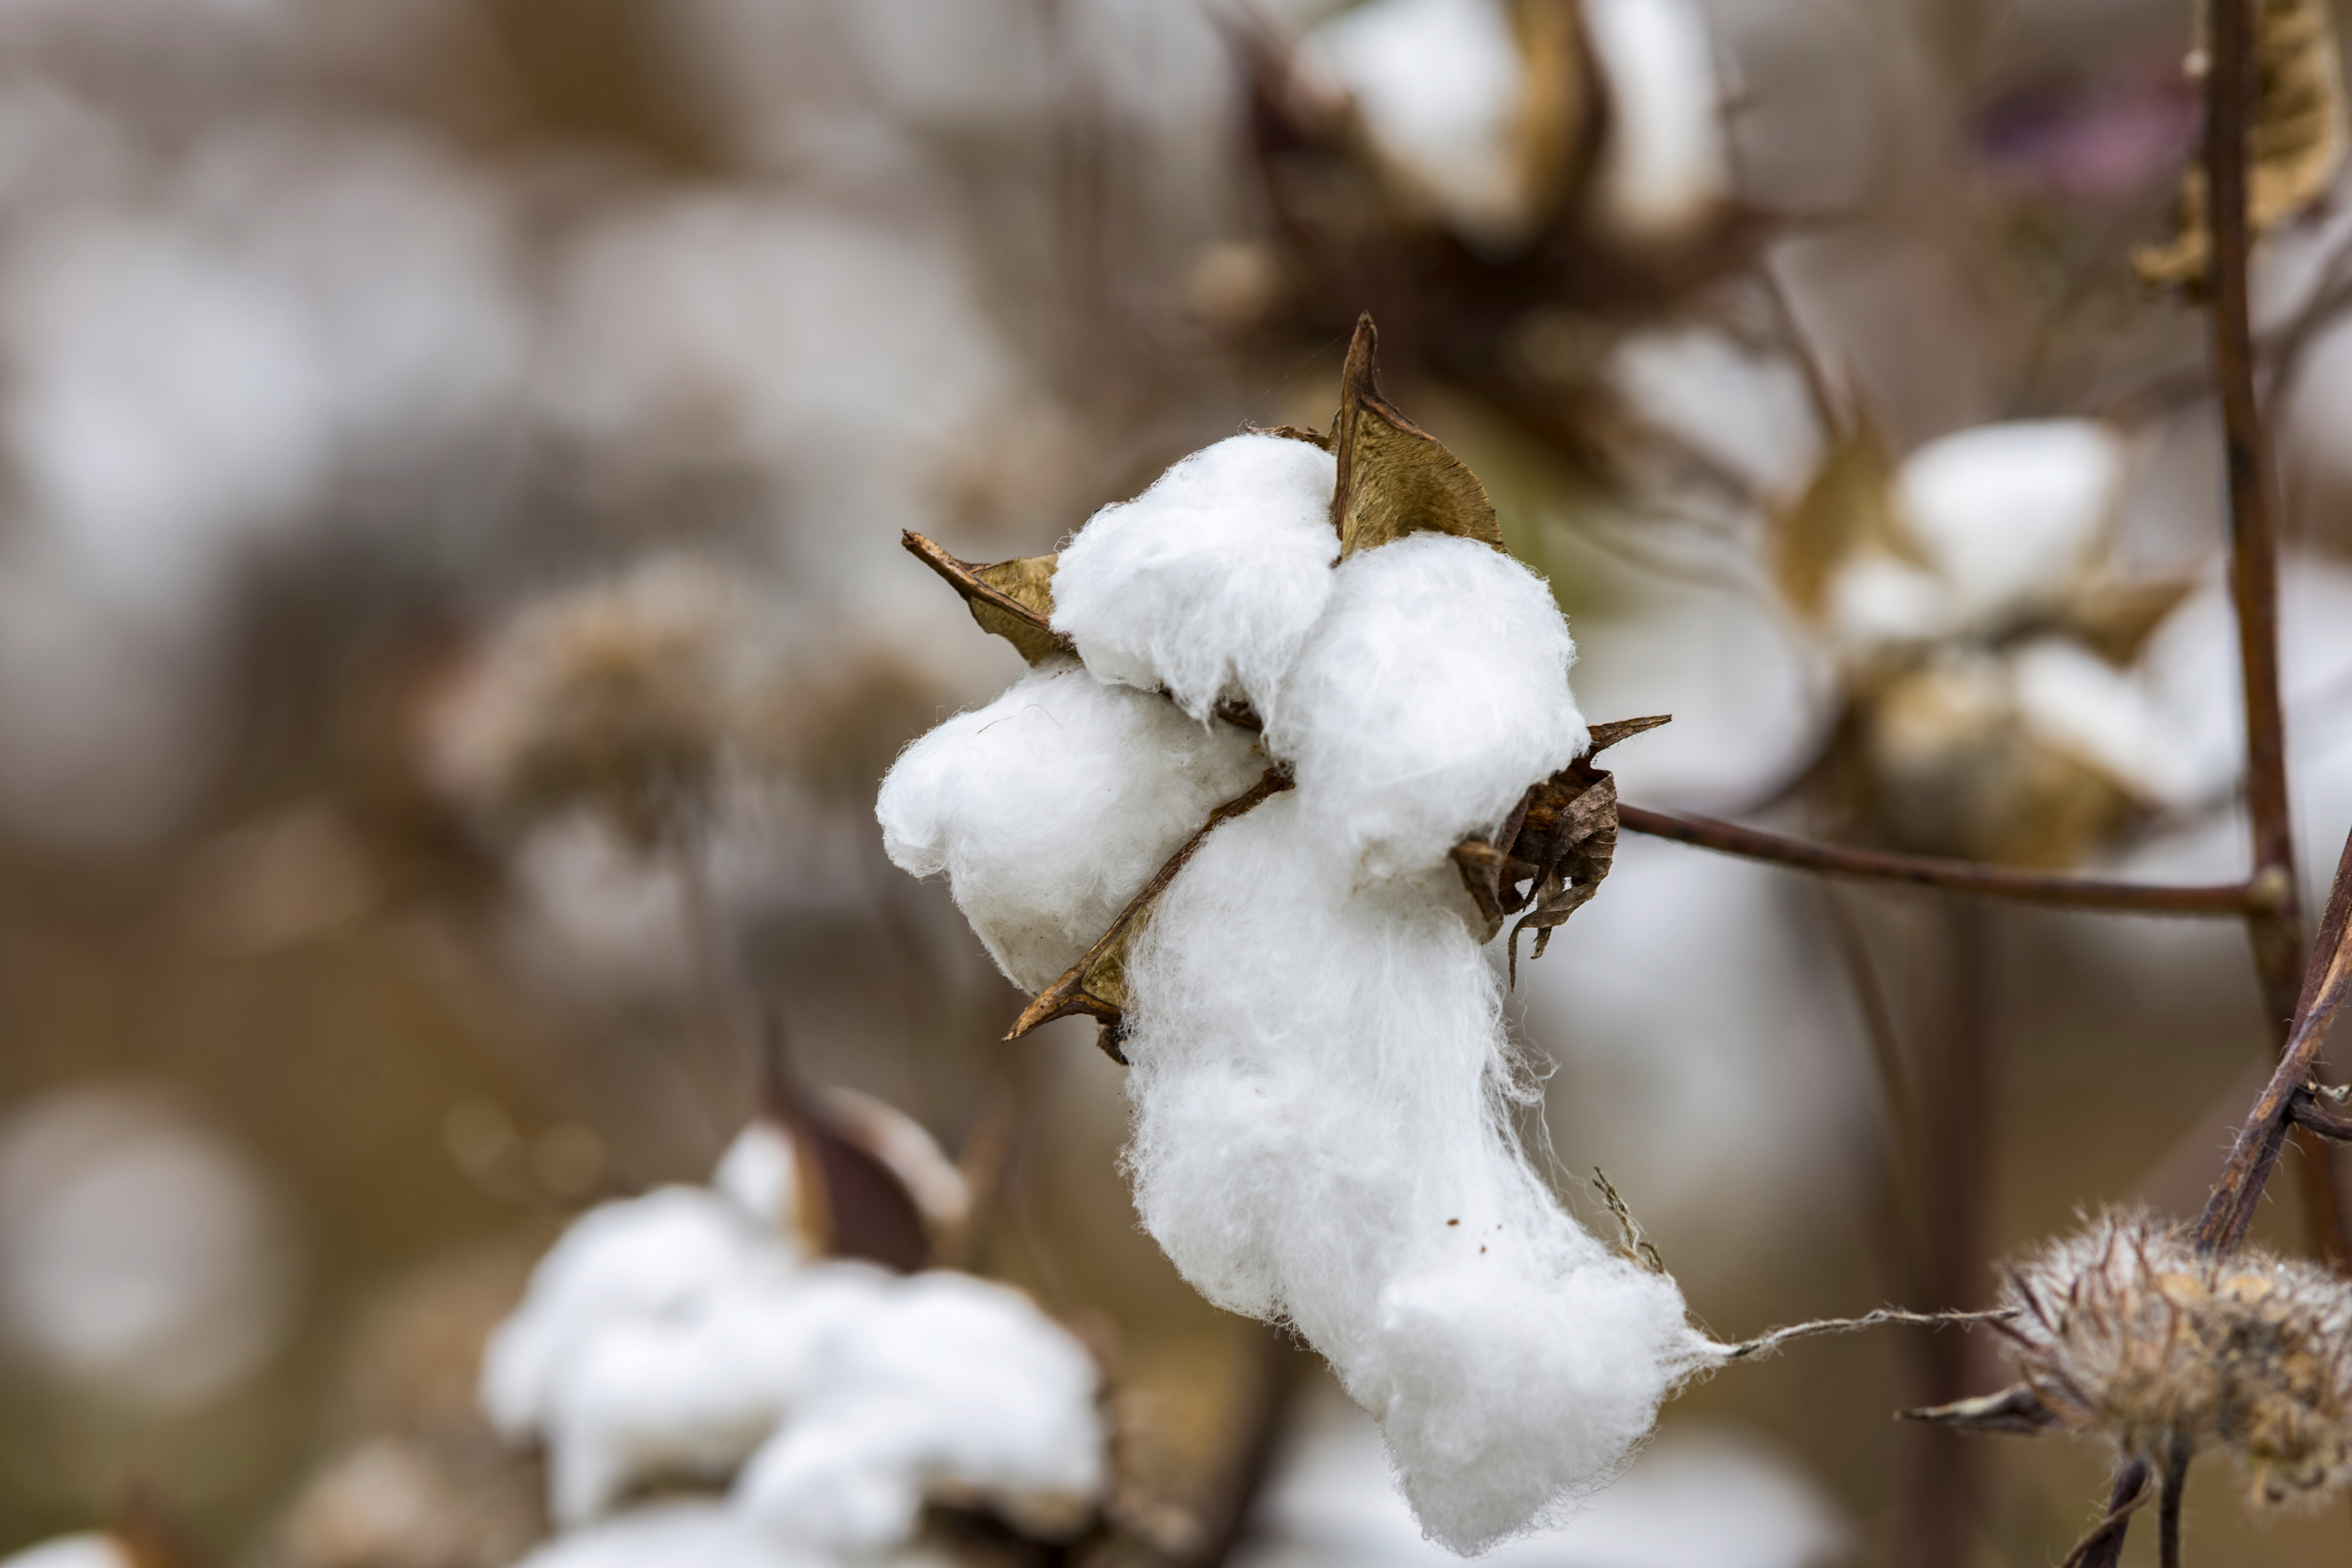 Ripe cotton boll: FCC warehouses and delivers around 35% of the cotton ginned in Texas